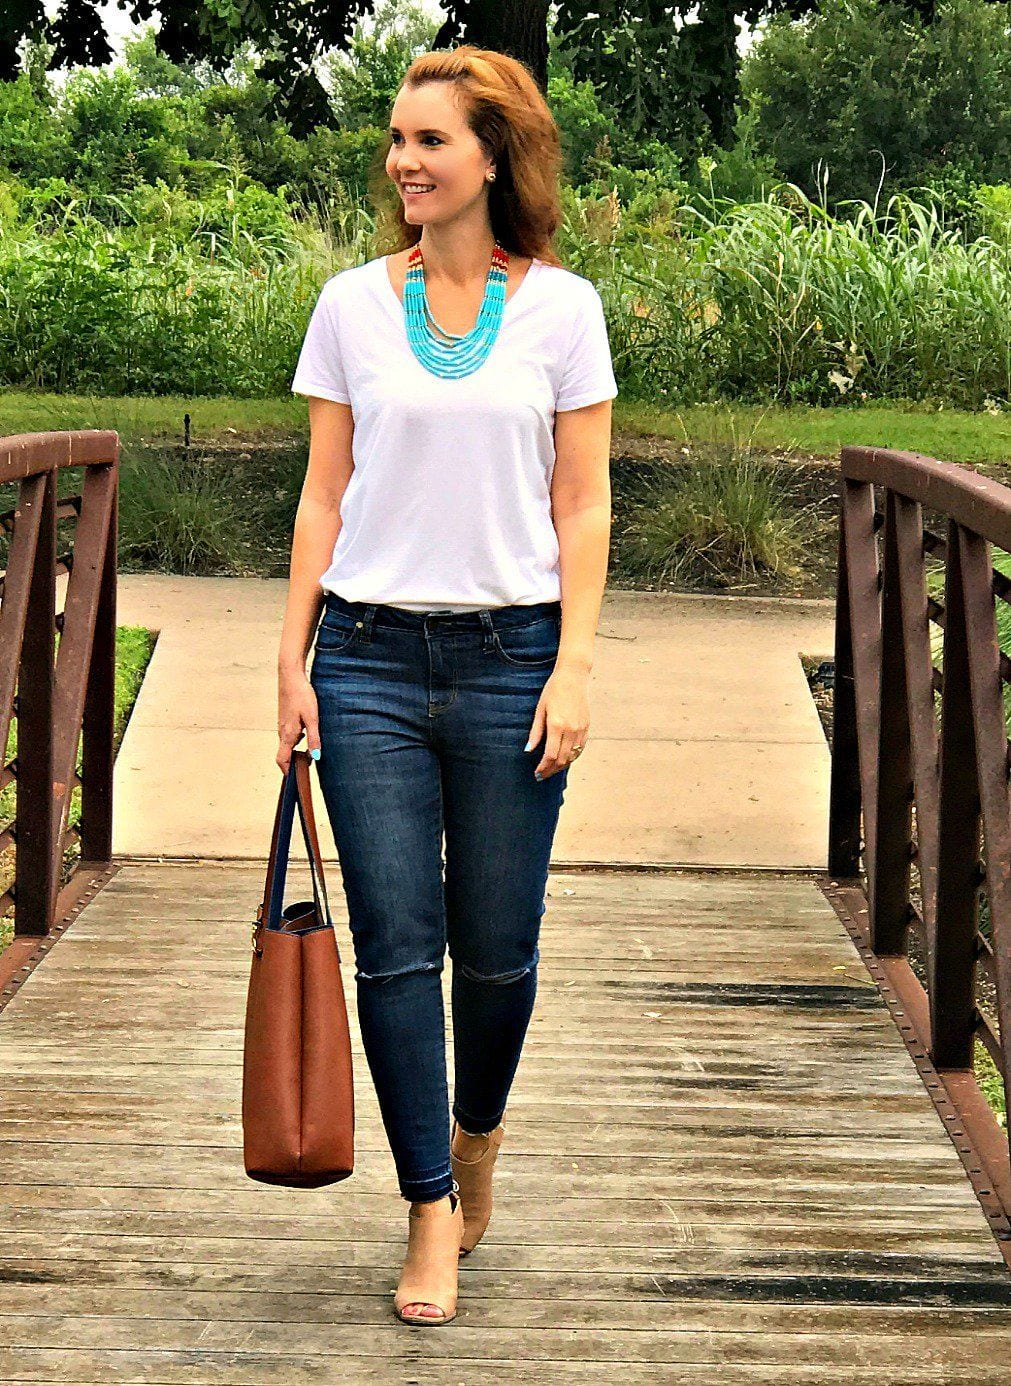 How To Dress Up A White T-Shirt And Jeans | Mom Fabulous